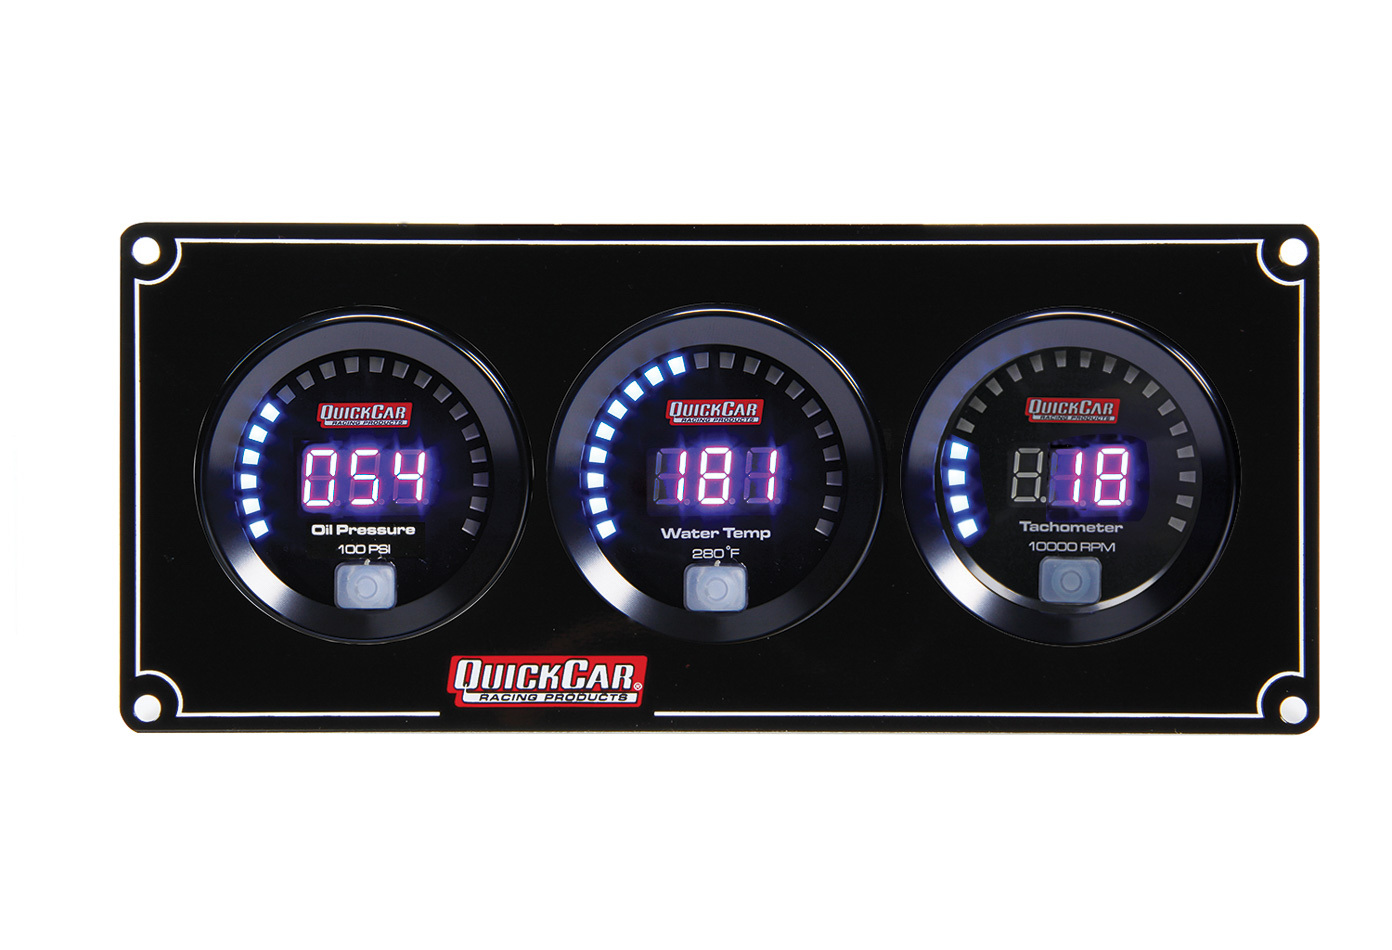 QuickCar 67-2031 Gauge Panel Assembly, Competition, Oil Pressure / Water Temperature / Tachometer, Black Face, Kit